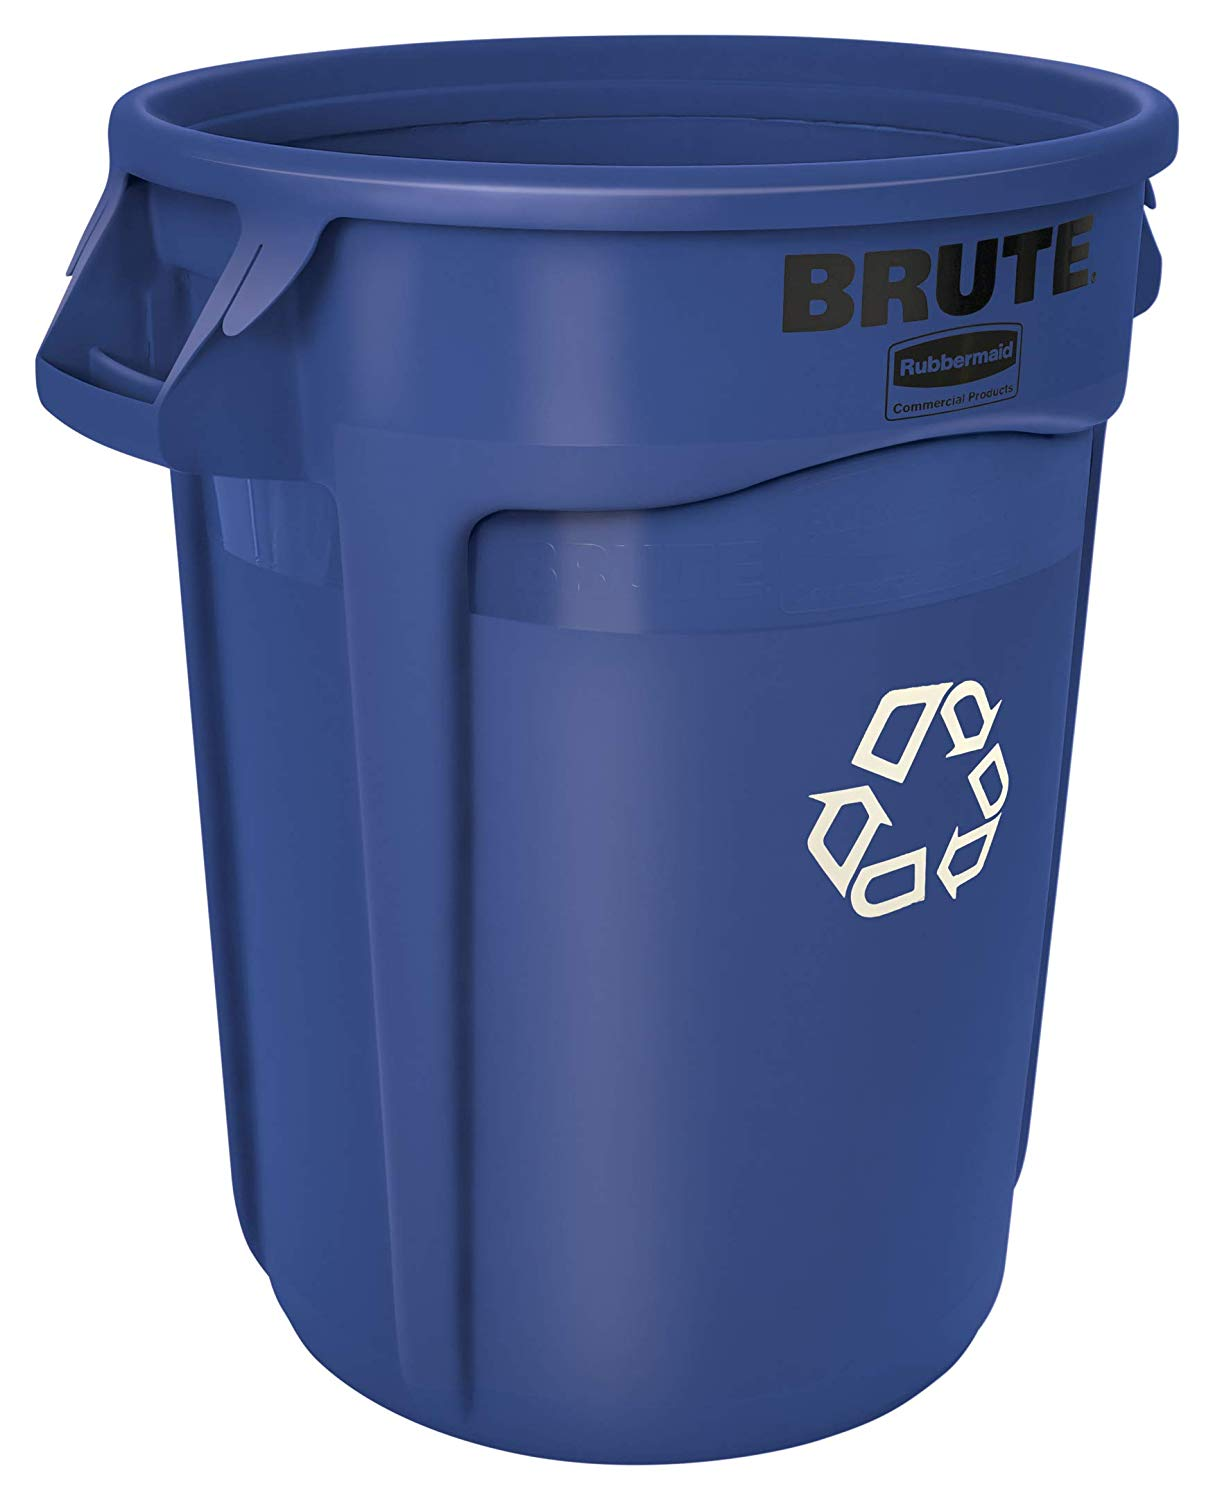 Rubbermaid FG263273 BRUTE Heavy-Duty Round Recycling Bin